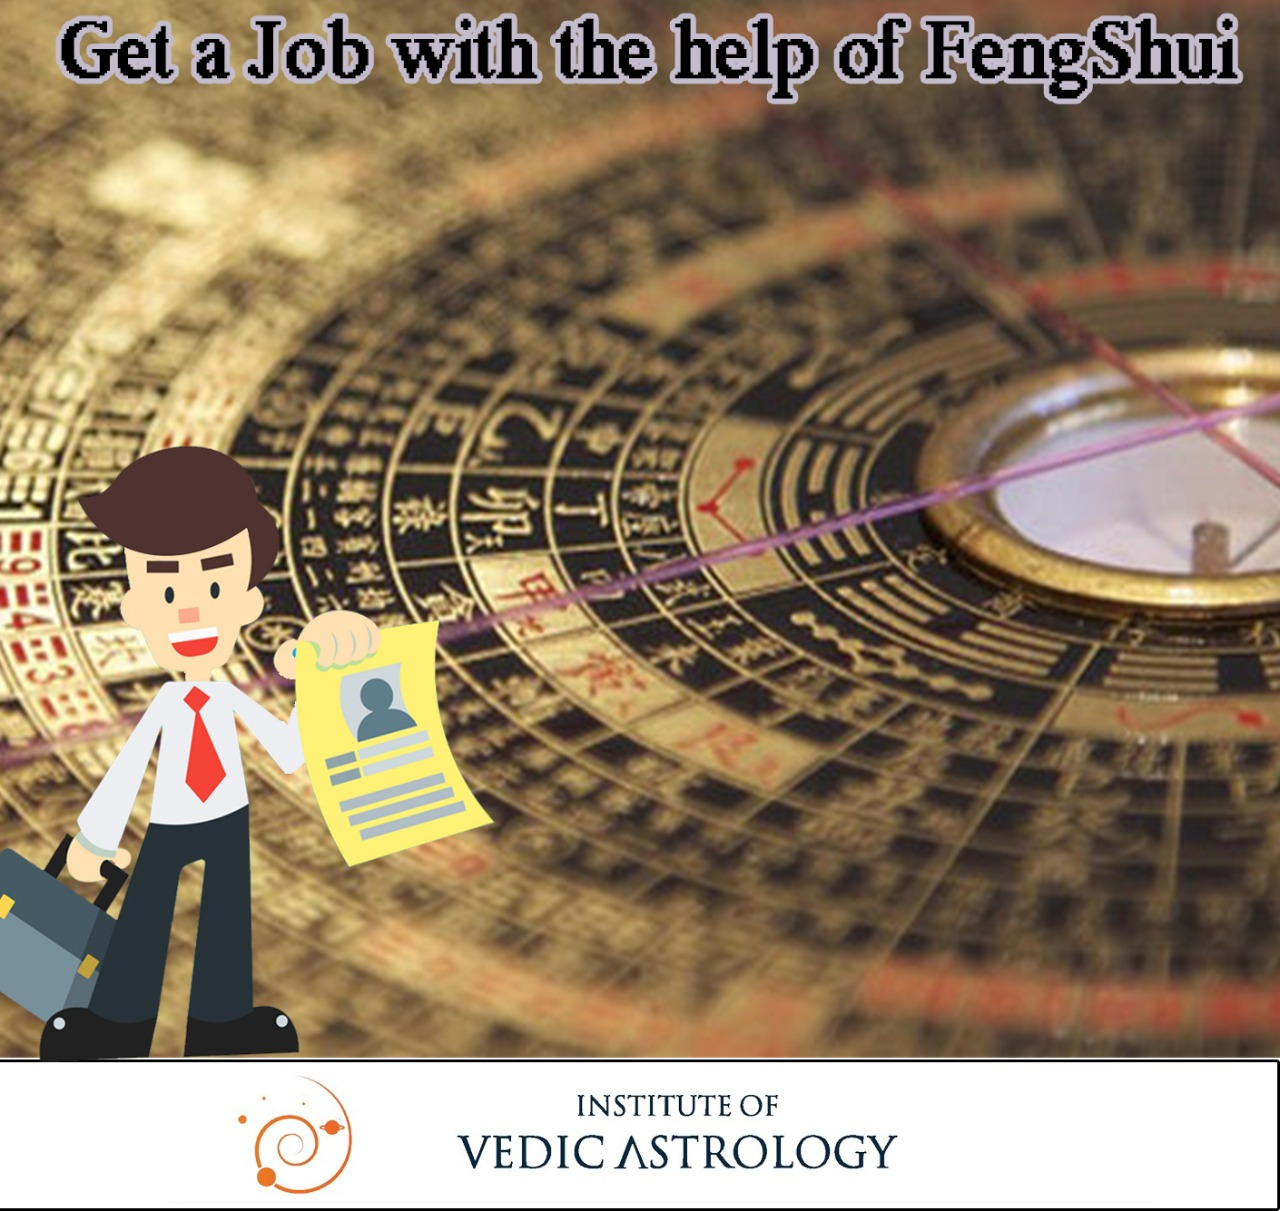 Get a Job with the Help of Feng Shui